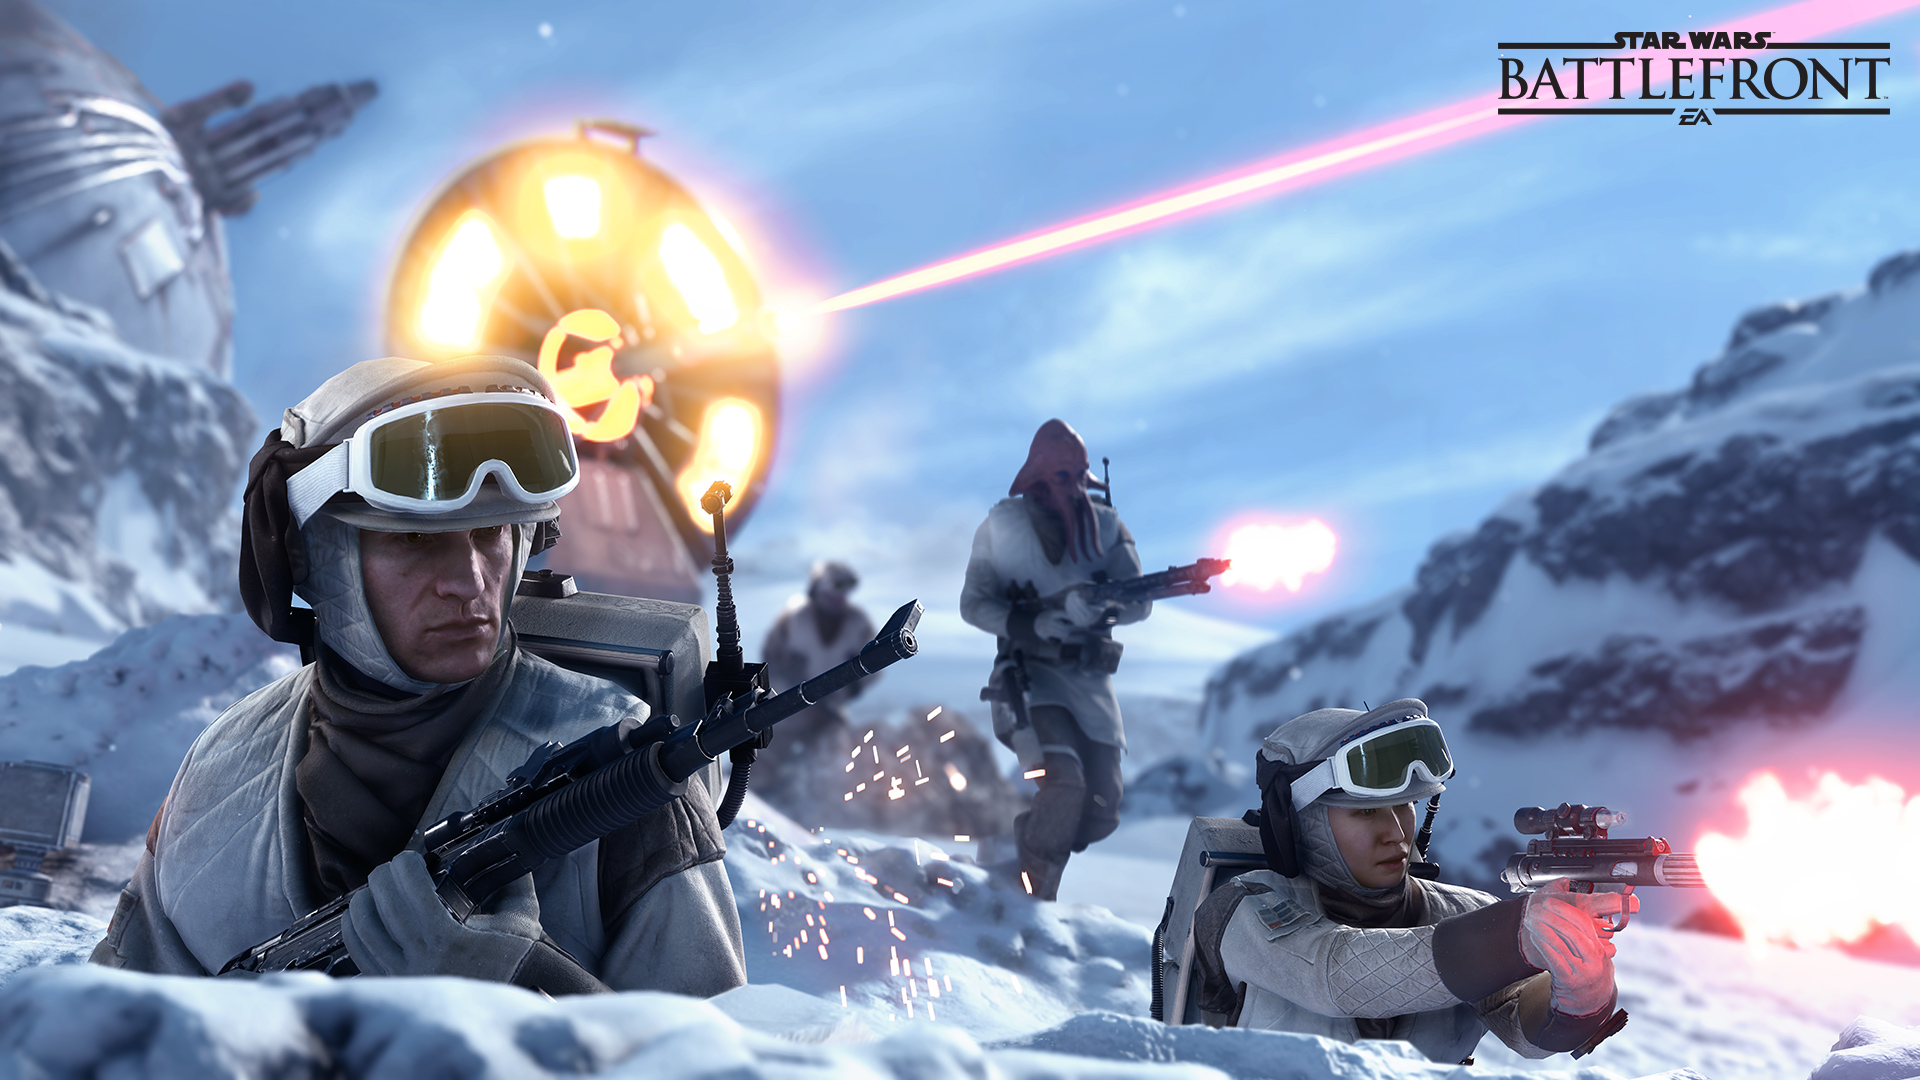 Star Wars Battlefront Wallpapers Pictures Images